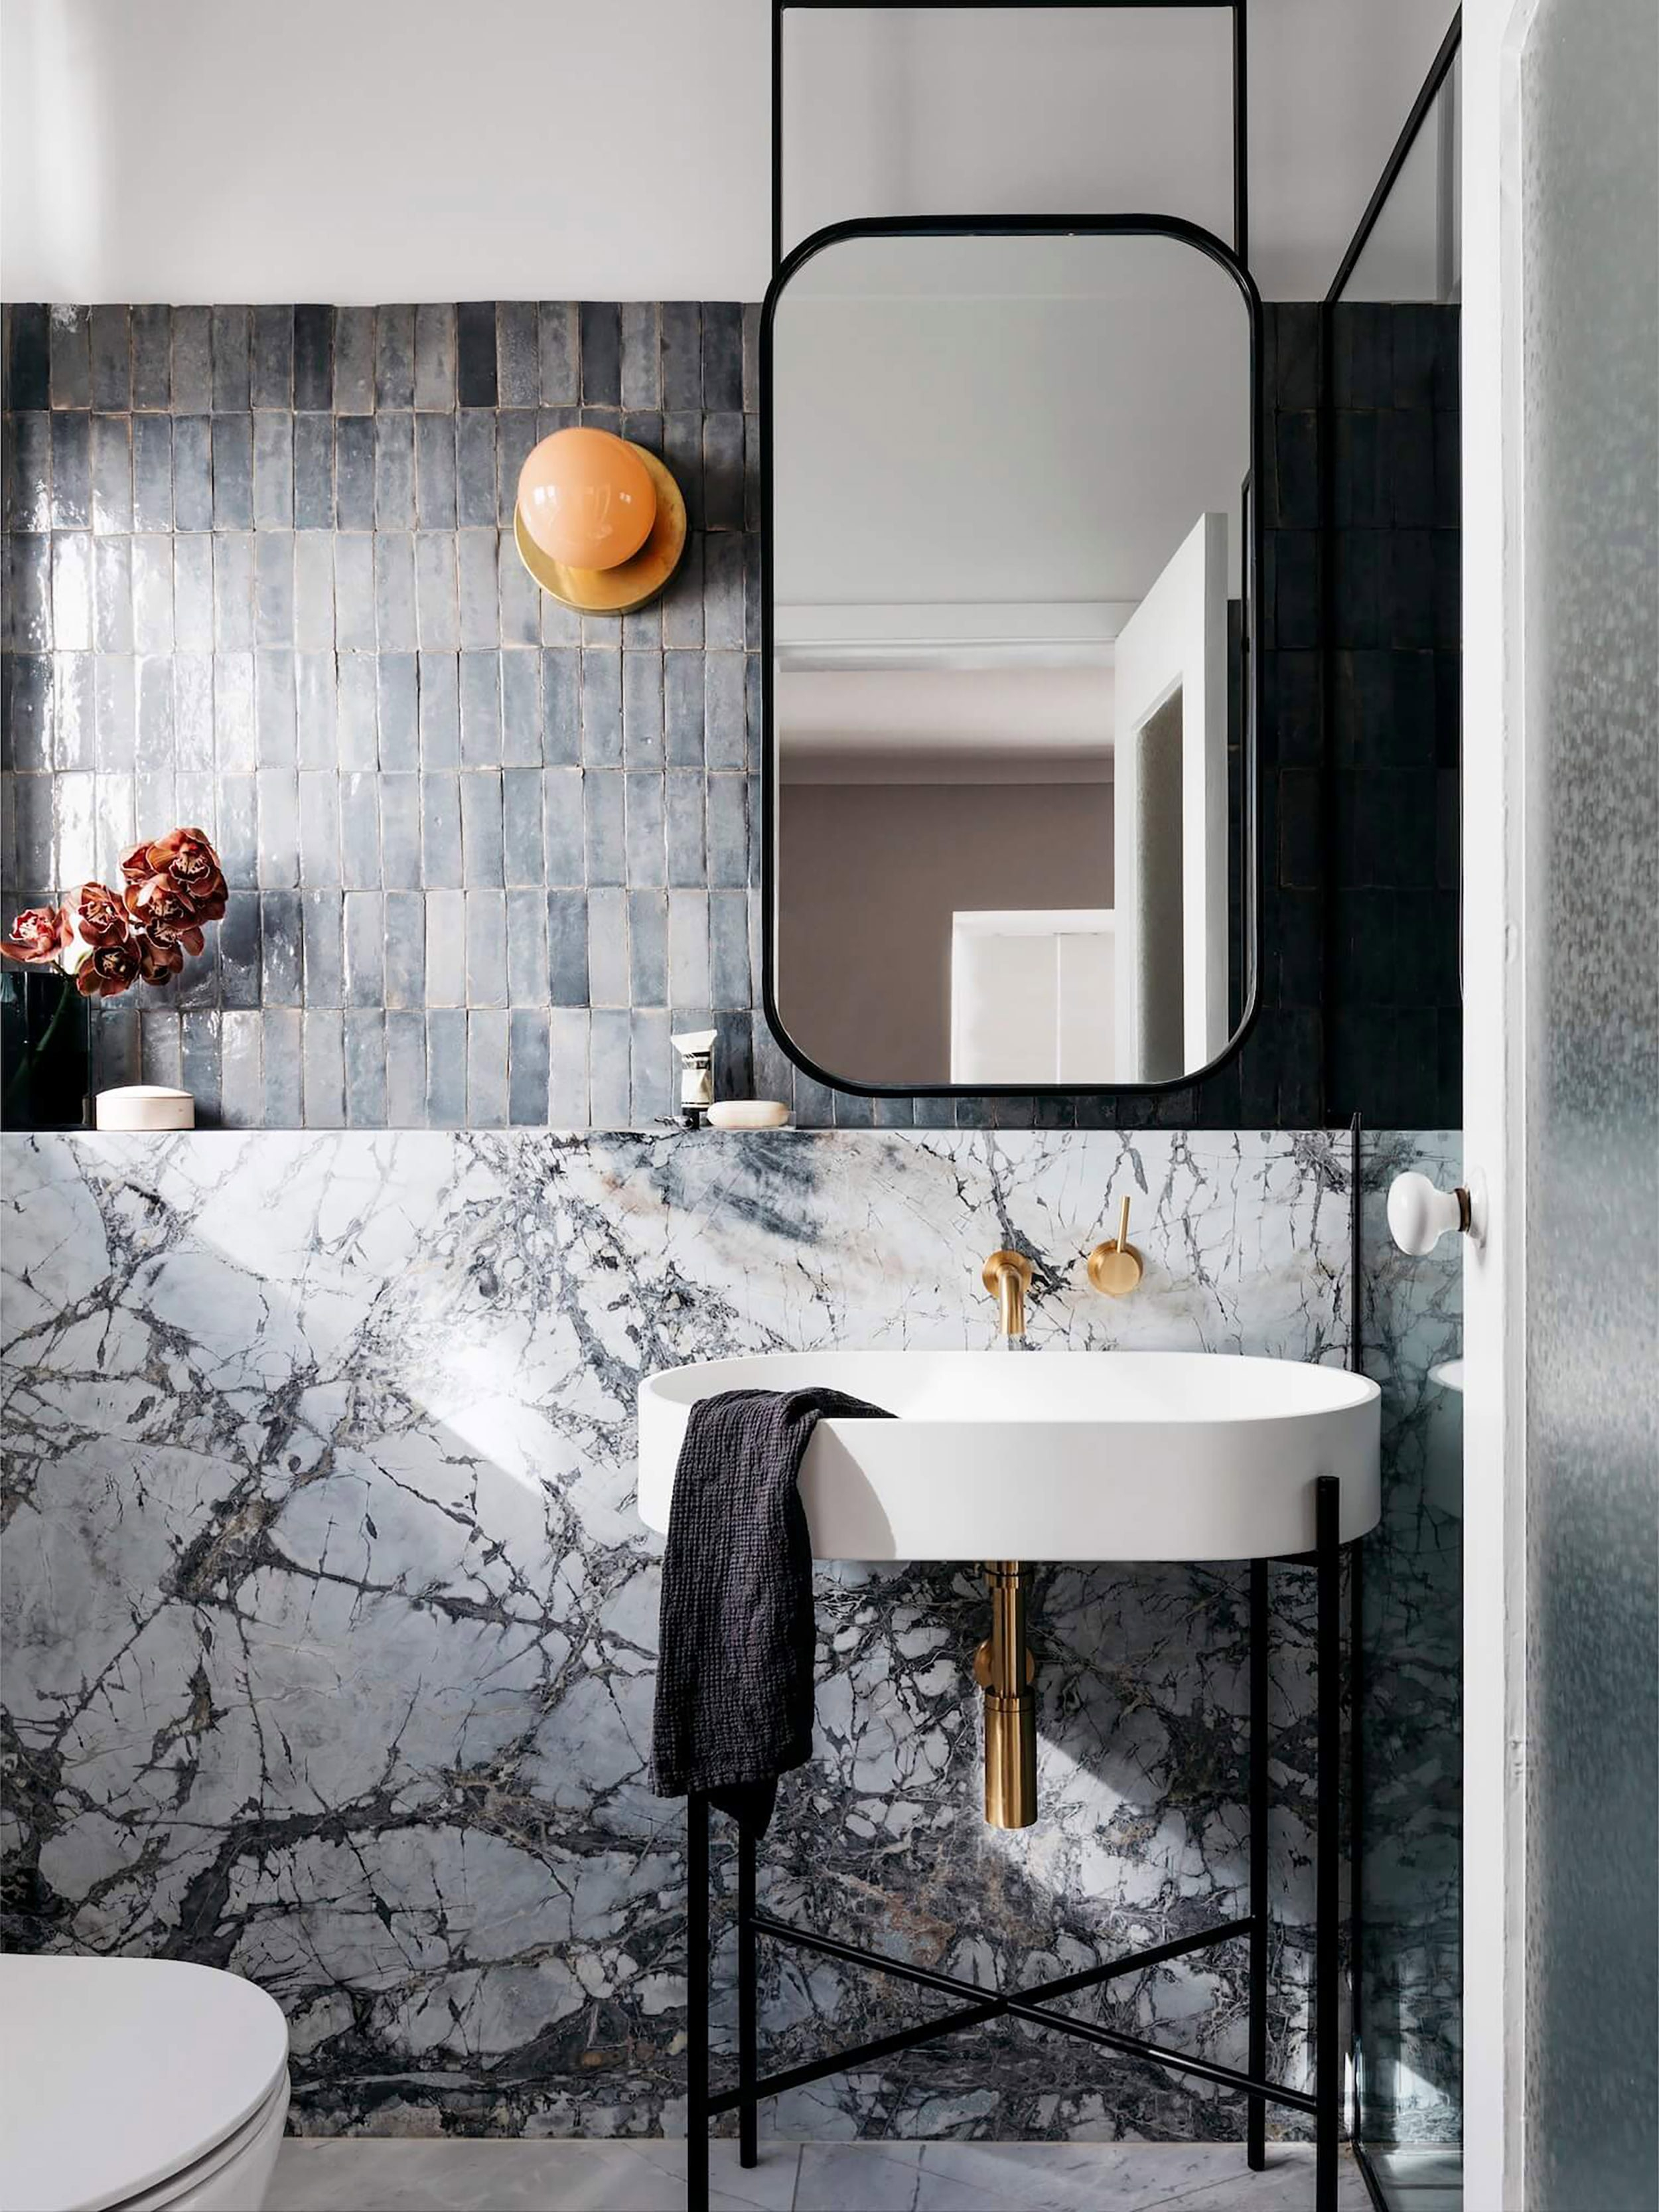 17 Fresh & Inspiring Bathroom Mirror Ideas To Shake Up Your Regarding Vertical Round Wall Mirrors (Image 3 of 20)